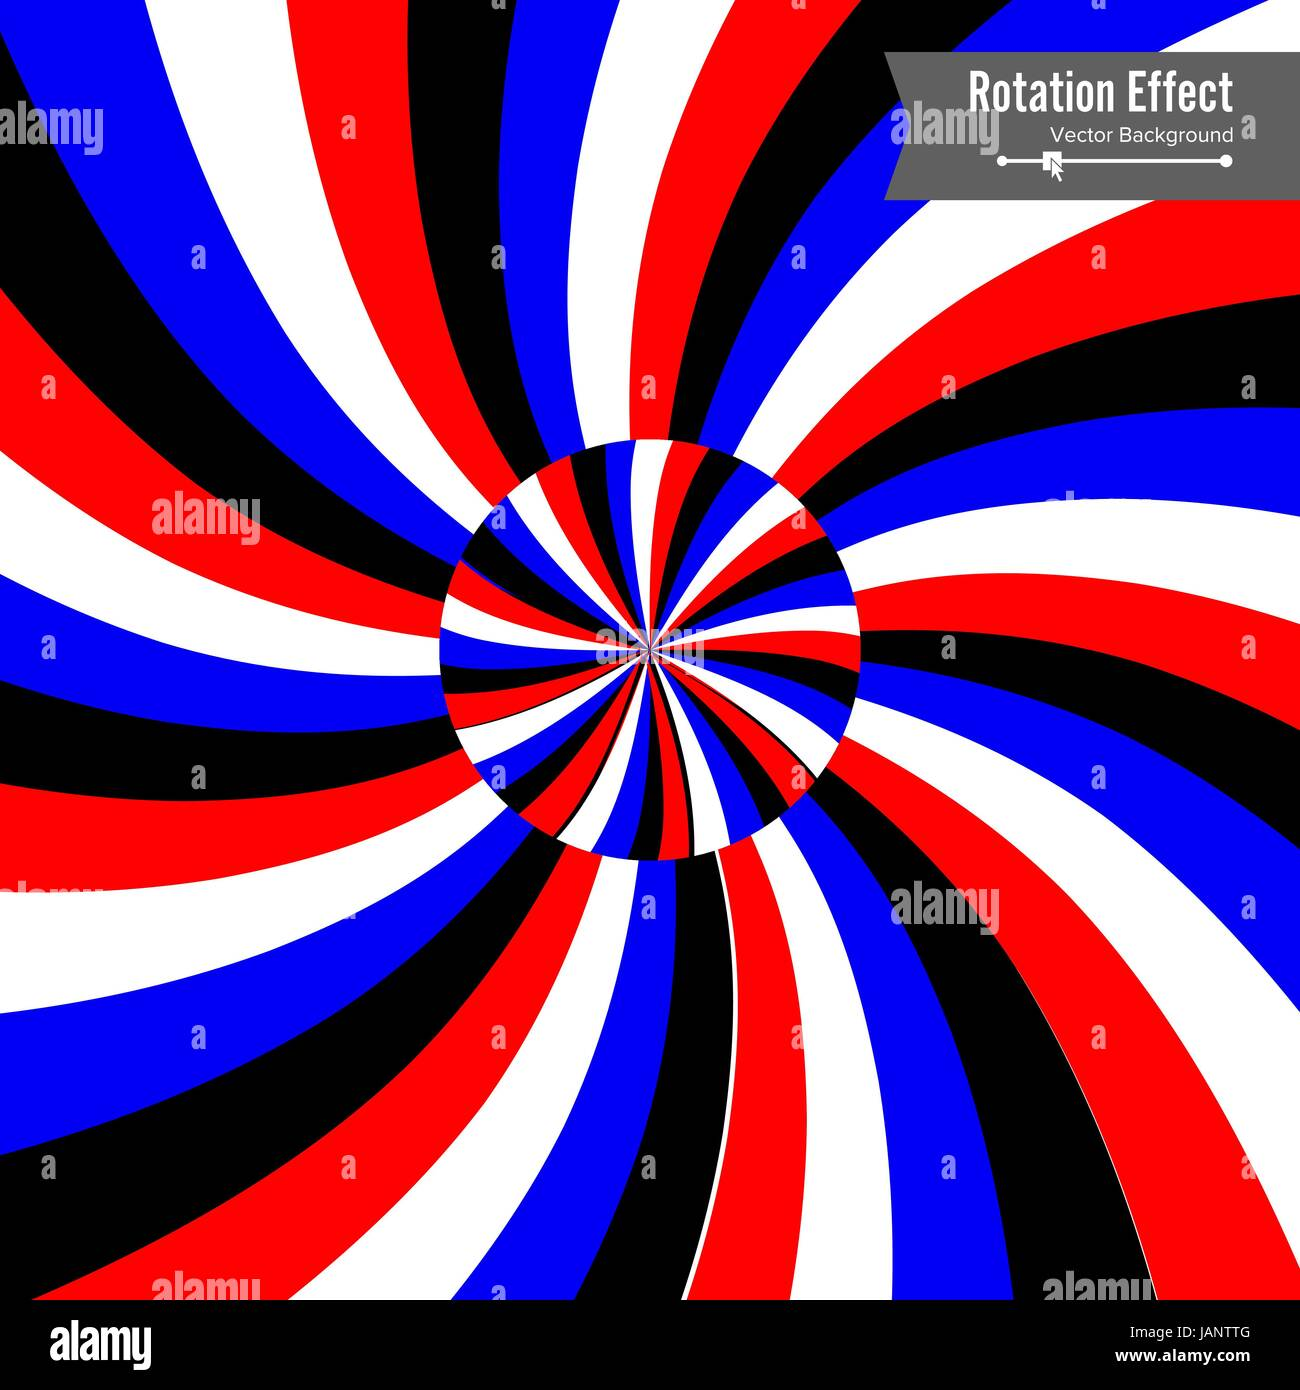 Optical Illusion Vector 3d Art Rotation Dynamic Effect